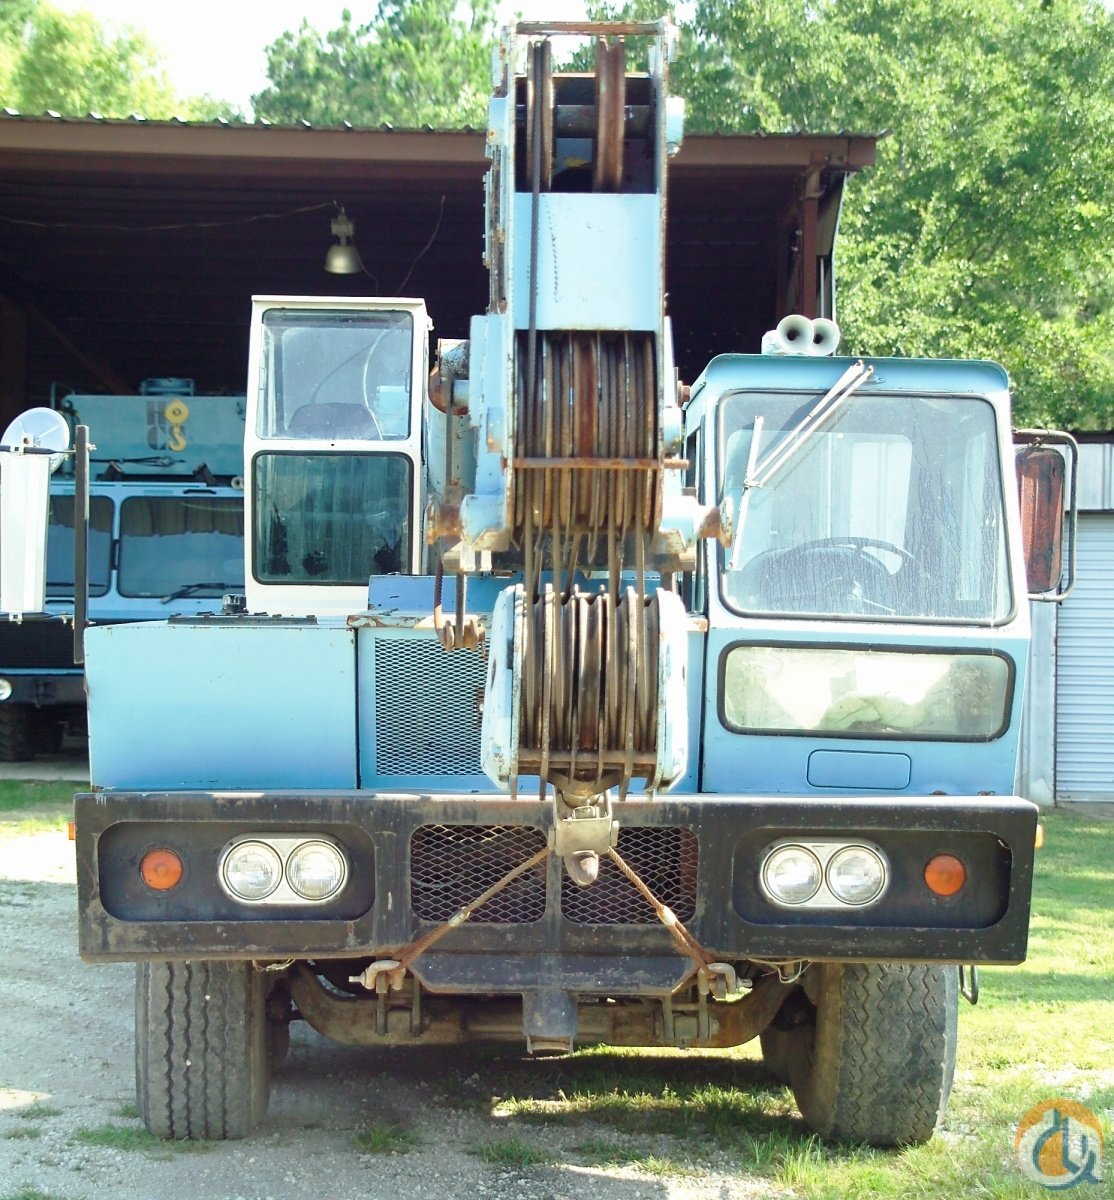 PH T-300-A Crane for Sale or Rent in Saraland Alabama on CraneNetwork.com